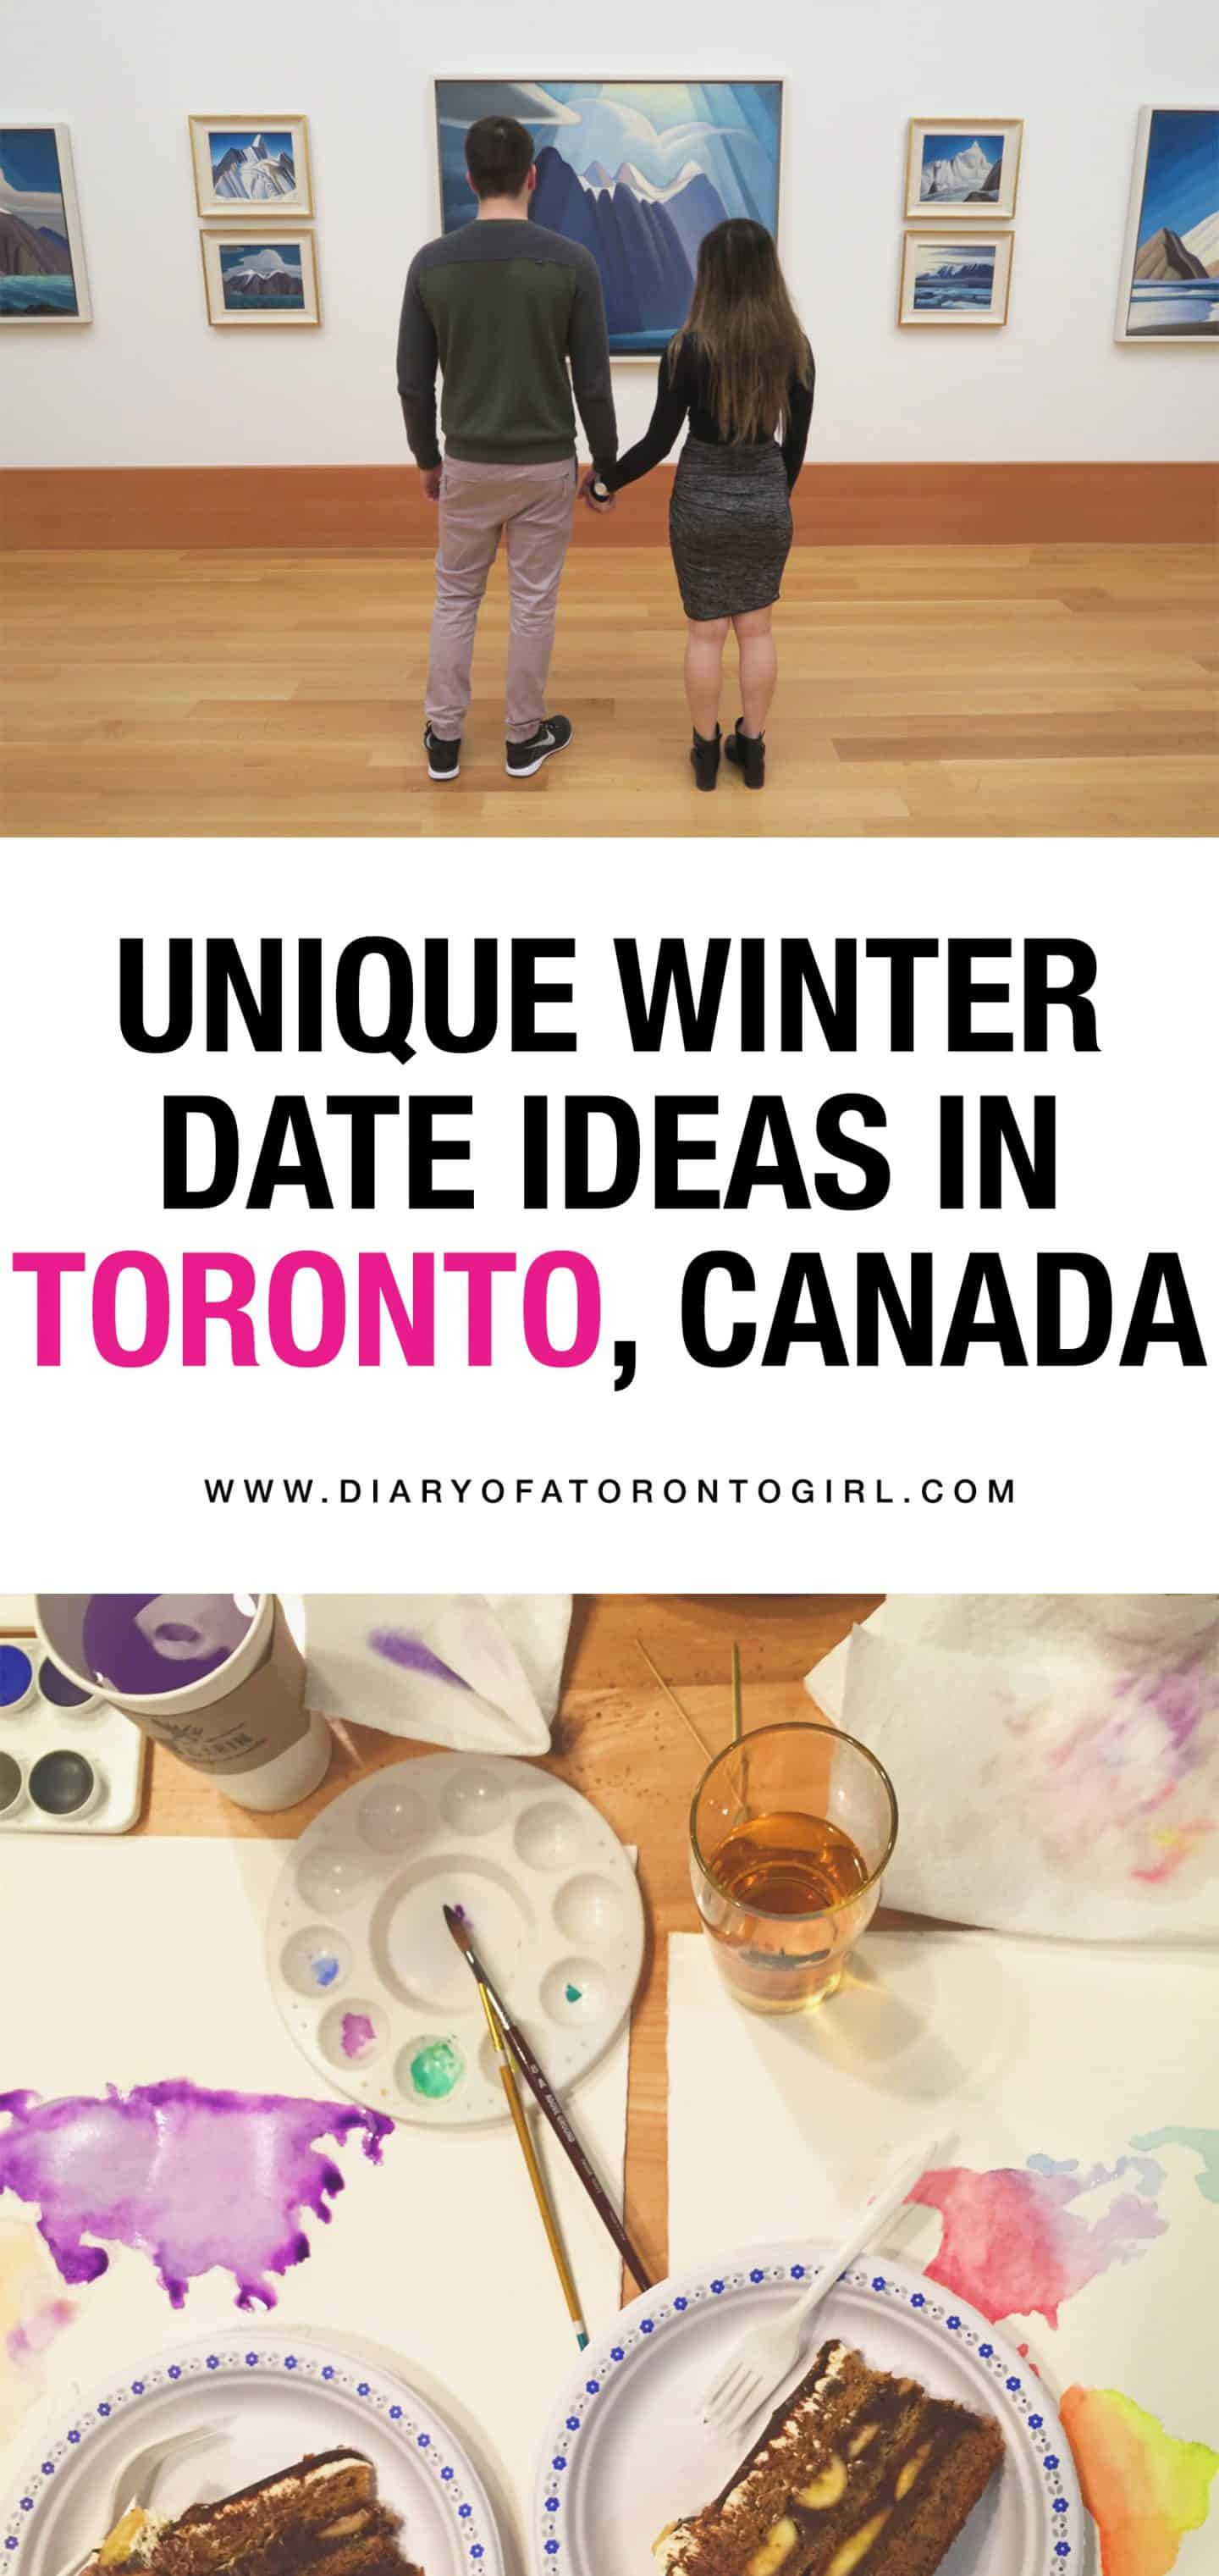 Cute, fun, and unique winter date ideas to go on in Toronto, Canada! The cold doesn't mean you have to stay in all the time.